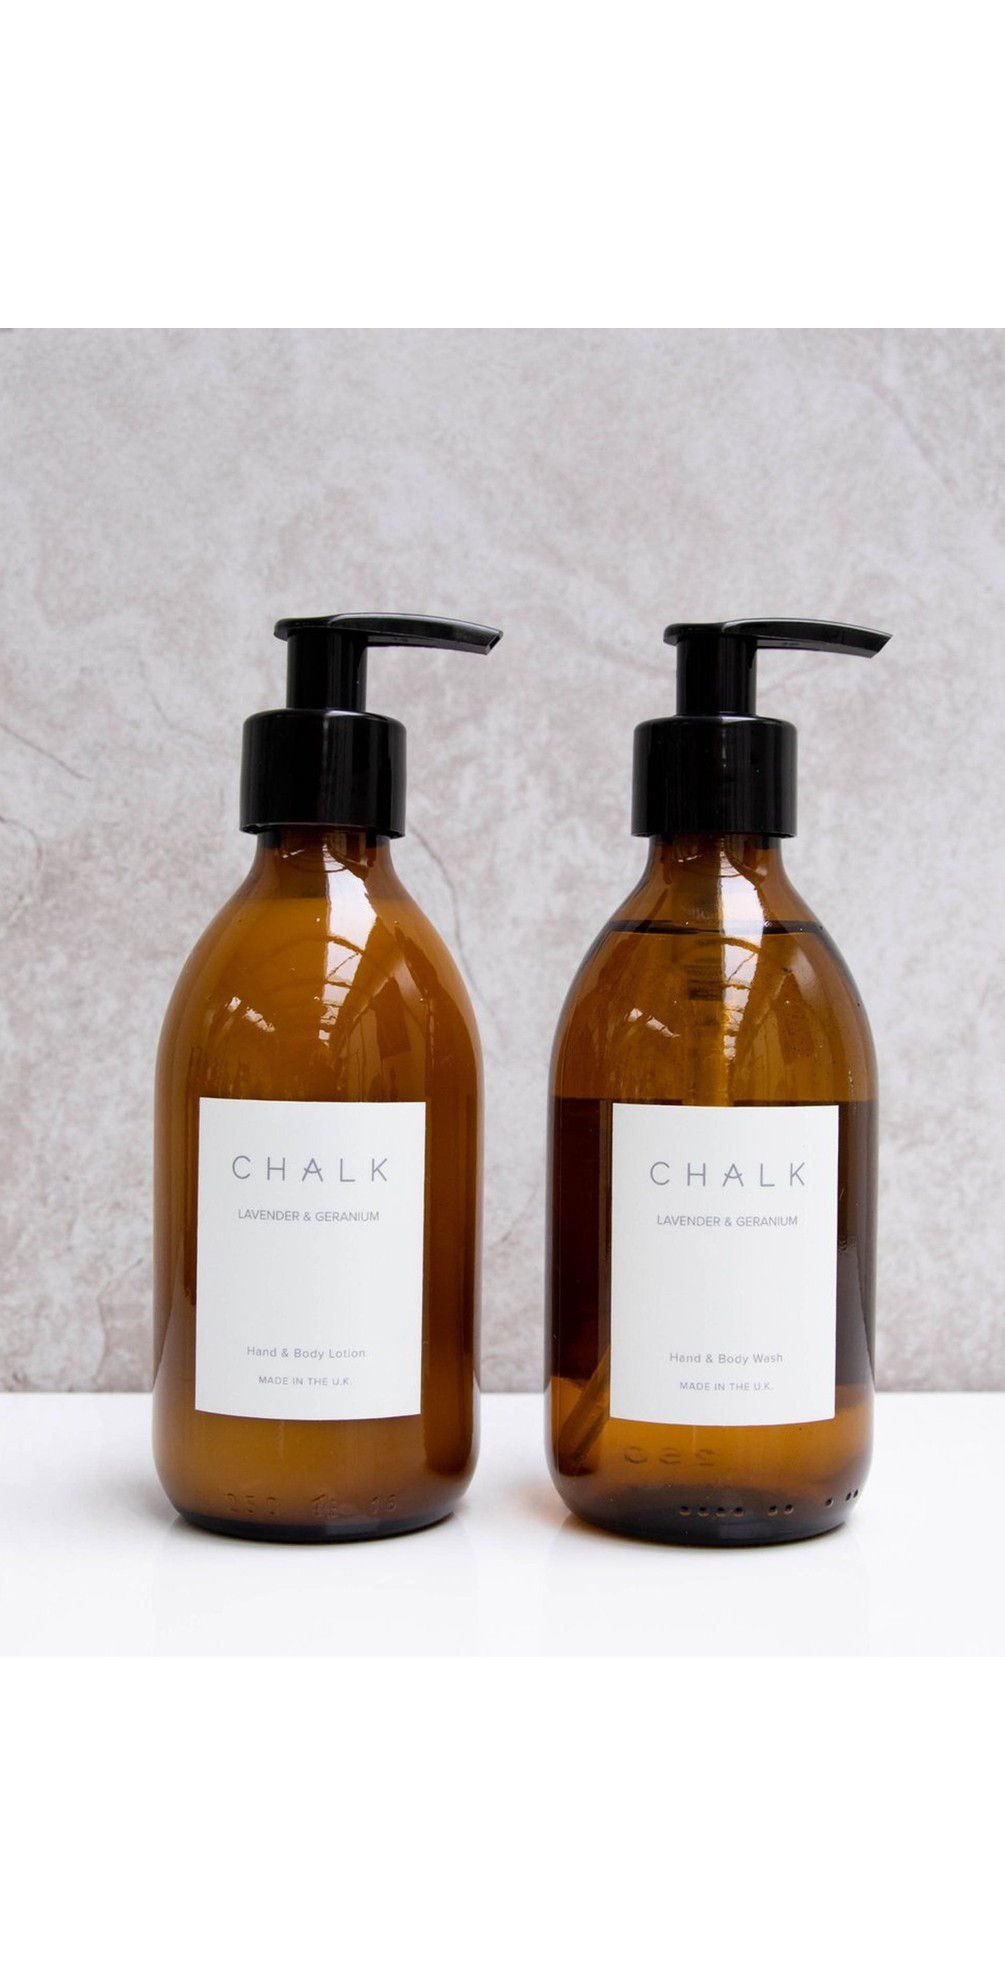 Lavender and Geranium Amber Glass Apothecary Hand Lotion Pump main image